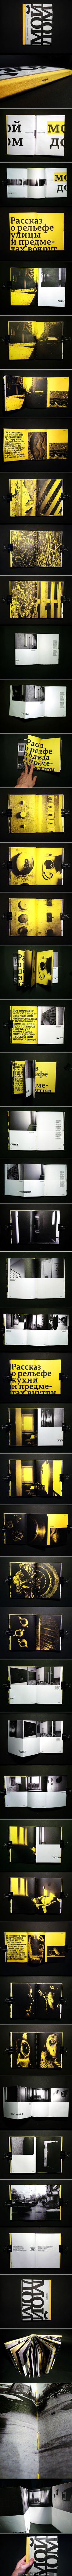 A book about spaces by Dmitry Okulich-Kazarin https://www.behance.net/gallery/17561817/A-book-about-spaces-of-my-home?share=1